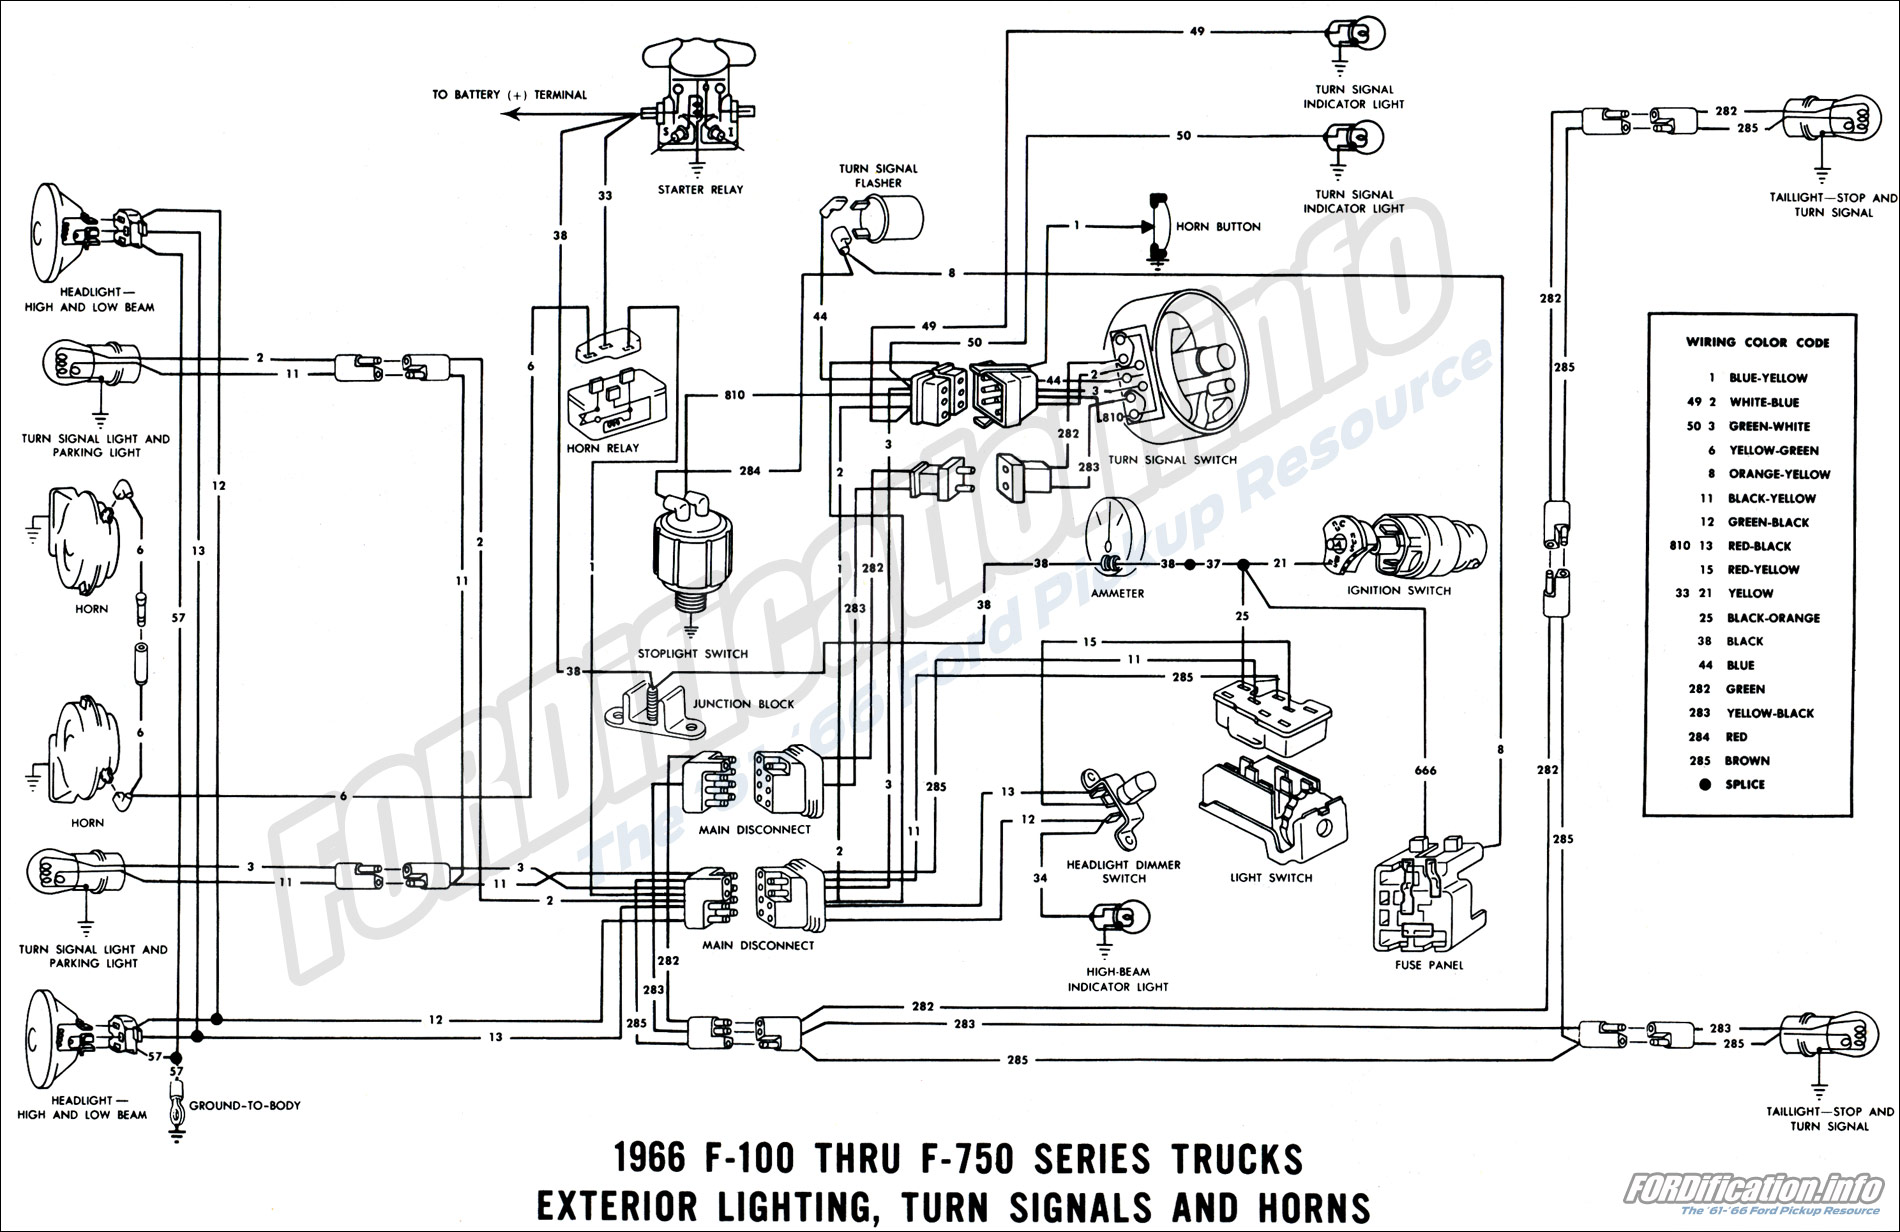 [DIAGRAM_38IS]  1966 Ford Alternator Wiring Diagram | Wiring Diagram | 1966 Ford Alternator Diagram Wiring Schematic |  | Wiring Diagram - AutoScout24